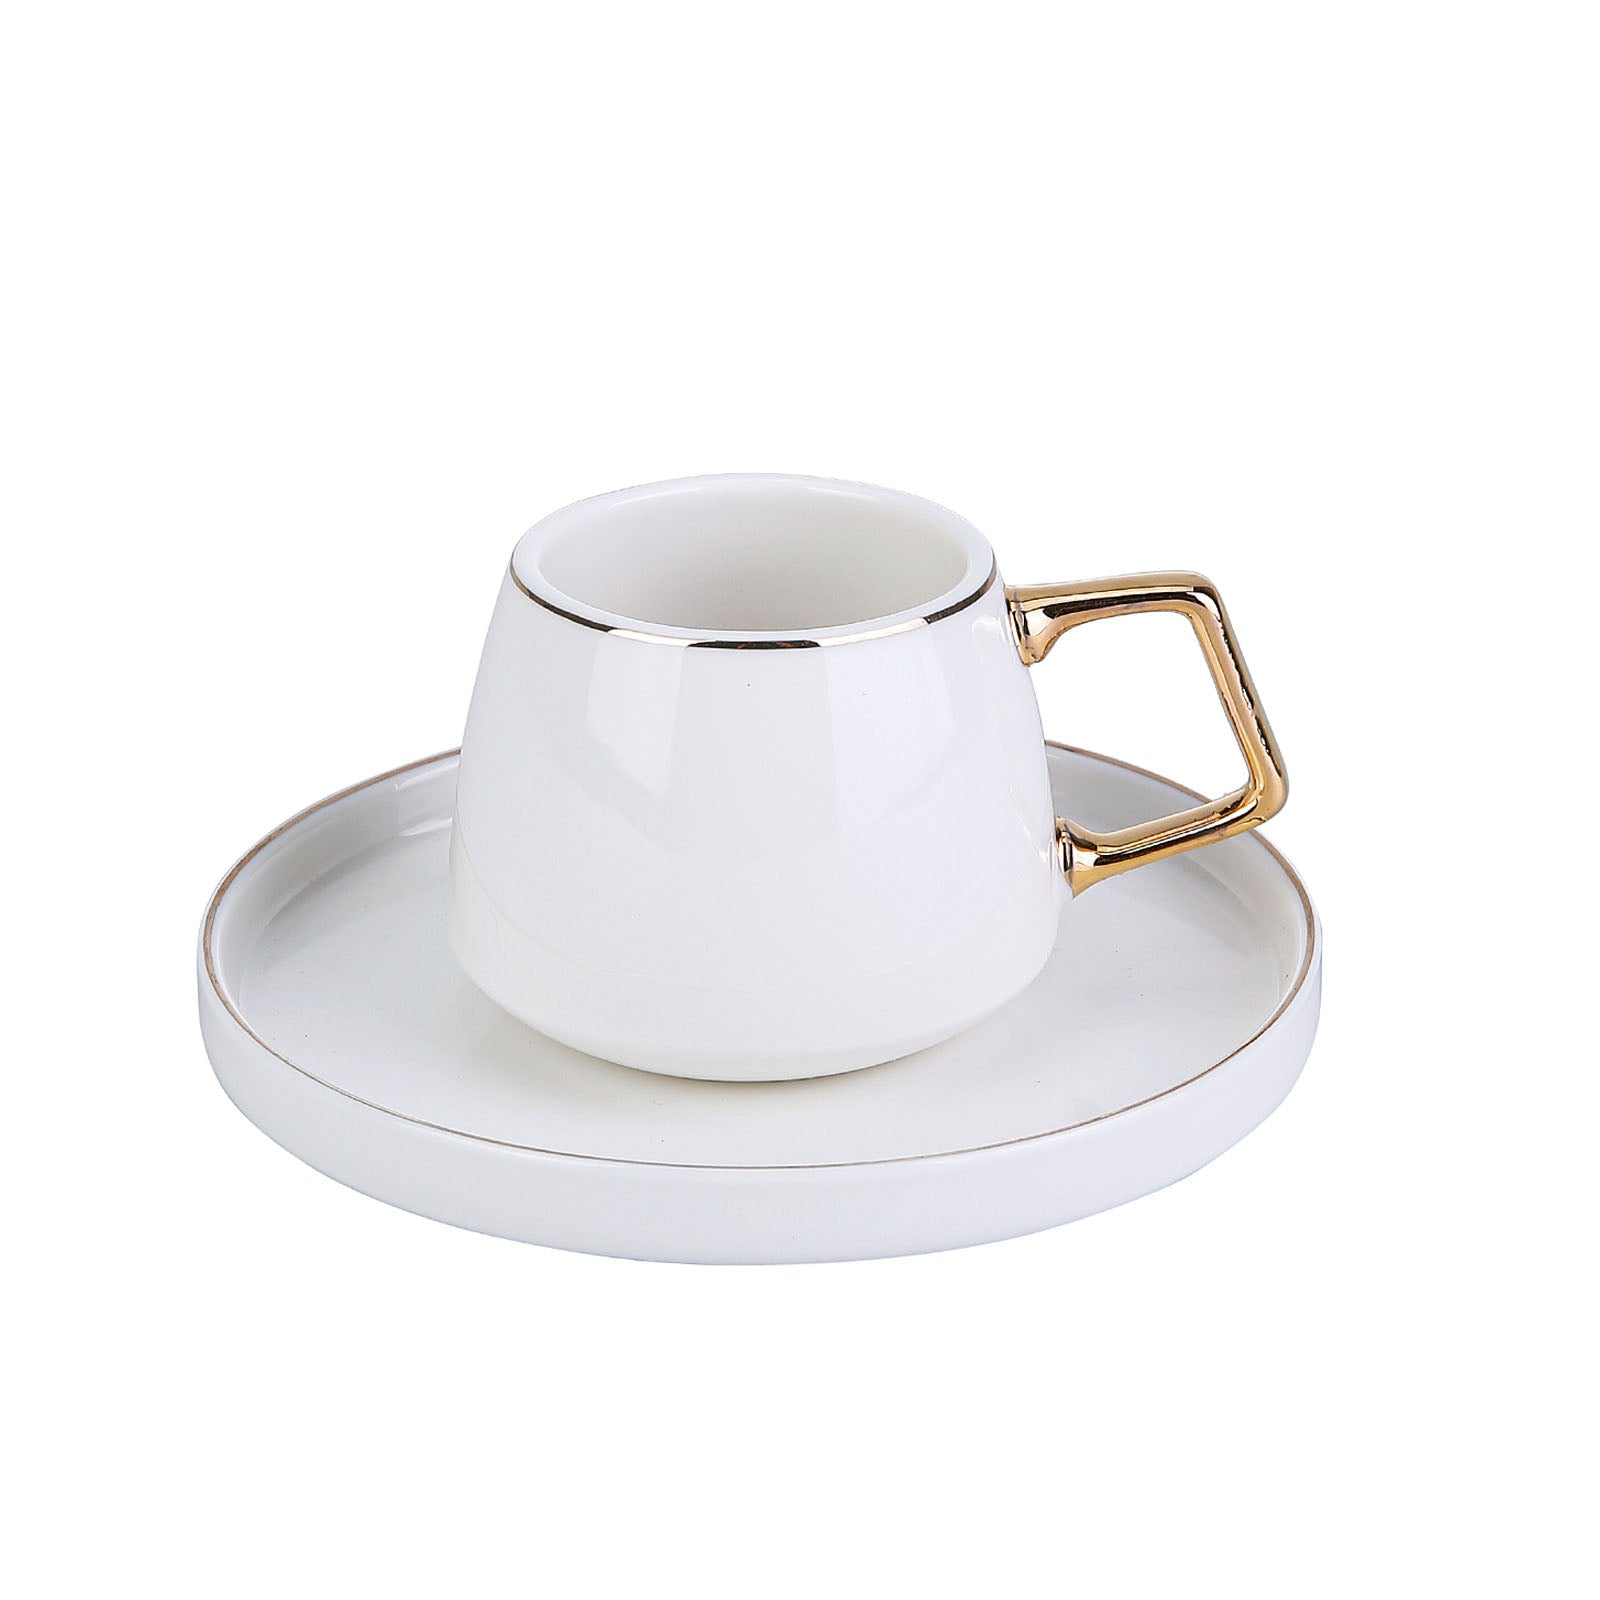 Saturn 6 Seater Porcelain Coffee Cup Sett 153.03.07.8417 -  طقم فناجين قهوة بورسلين من ساتورن ب 6 مقاعد - Shop Online Furniture and Home Decor Store in Dubai, UAE at ebarza